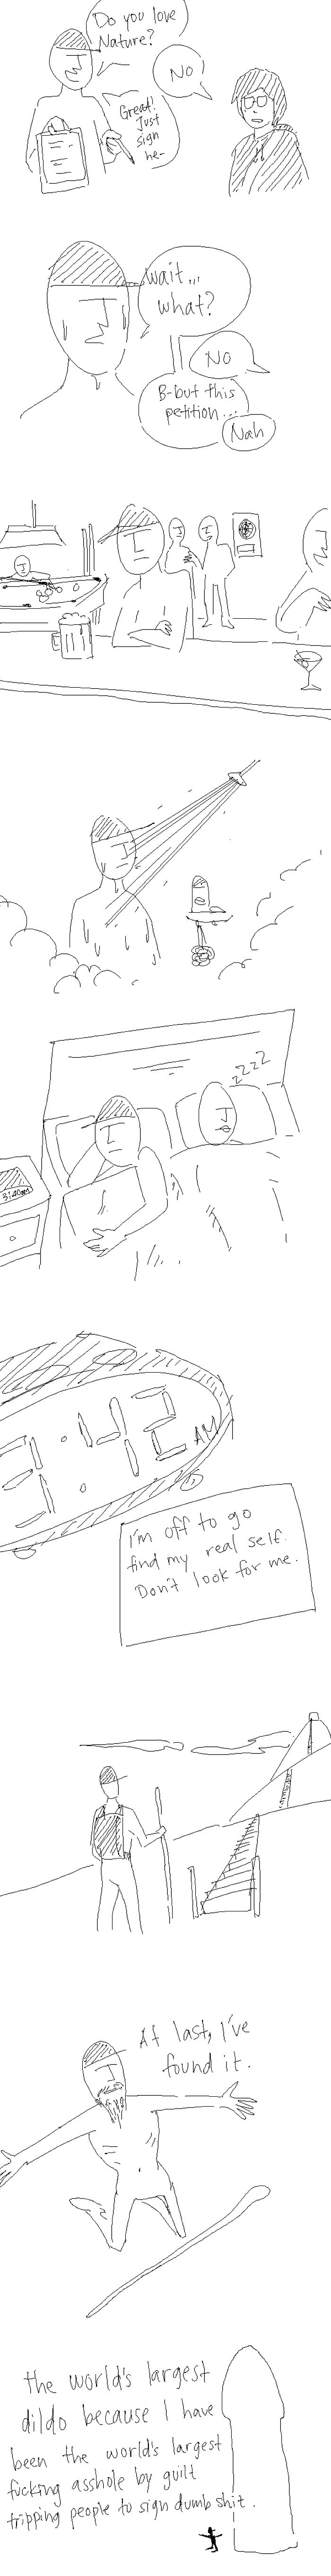 Depressing Comics You Can Relate To